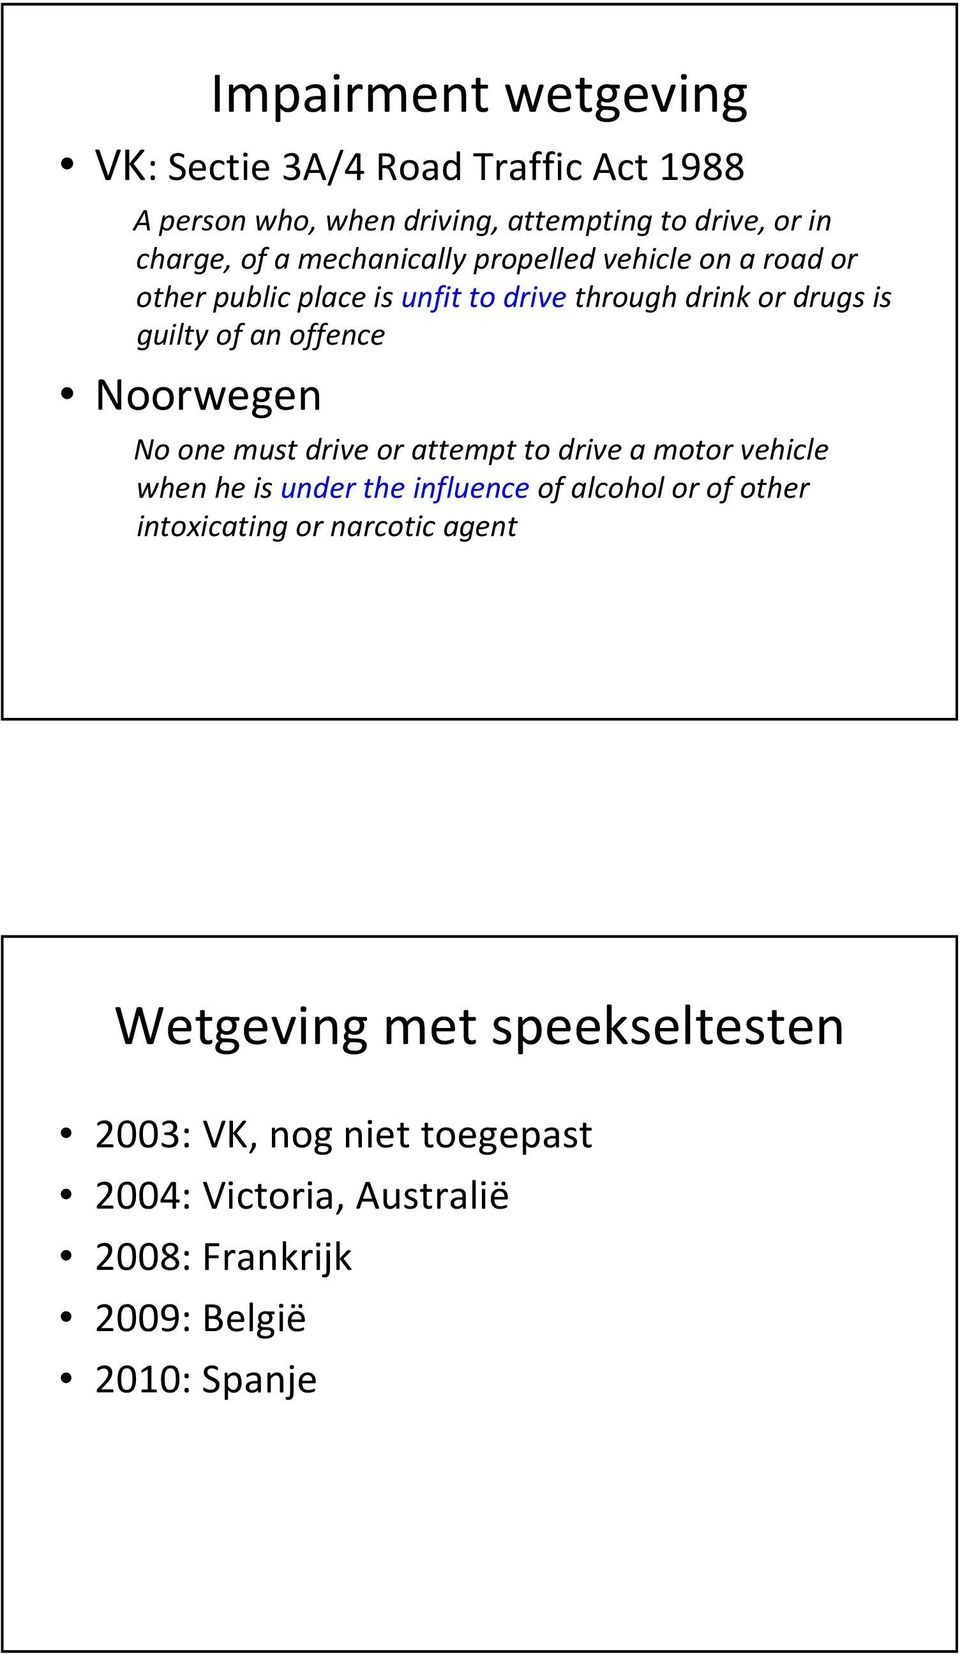 Noorwegen No one must drive or attempt to drive a motor vehicle when he is under the influenceof alcohol or of other intoxicating